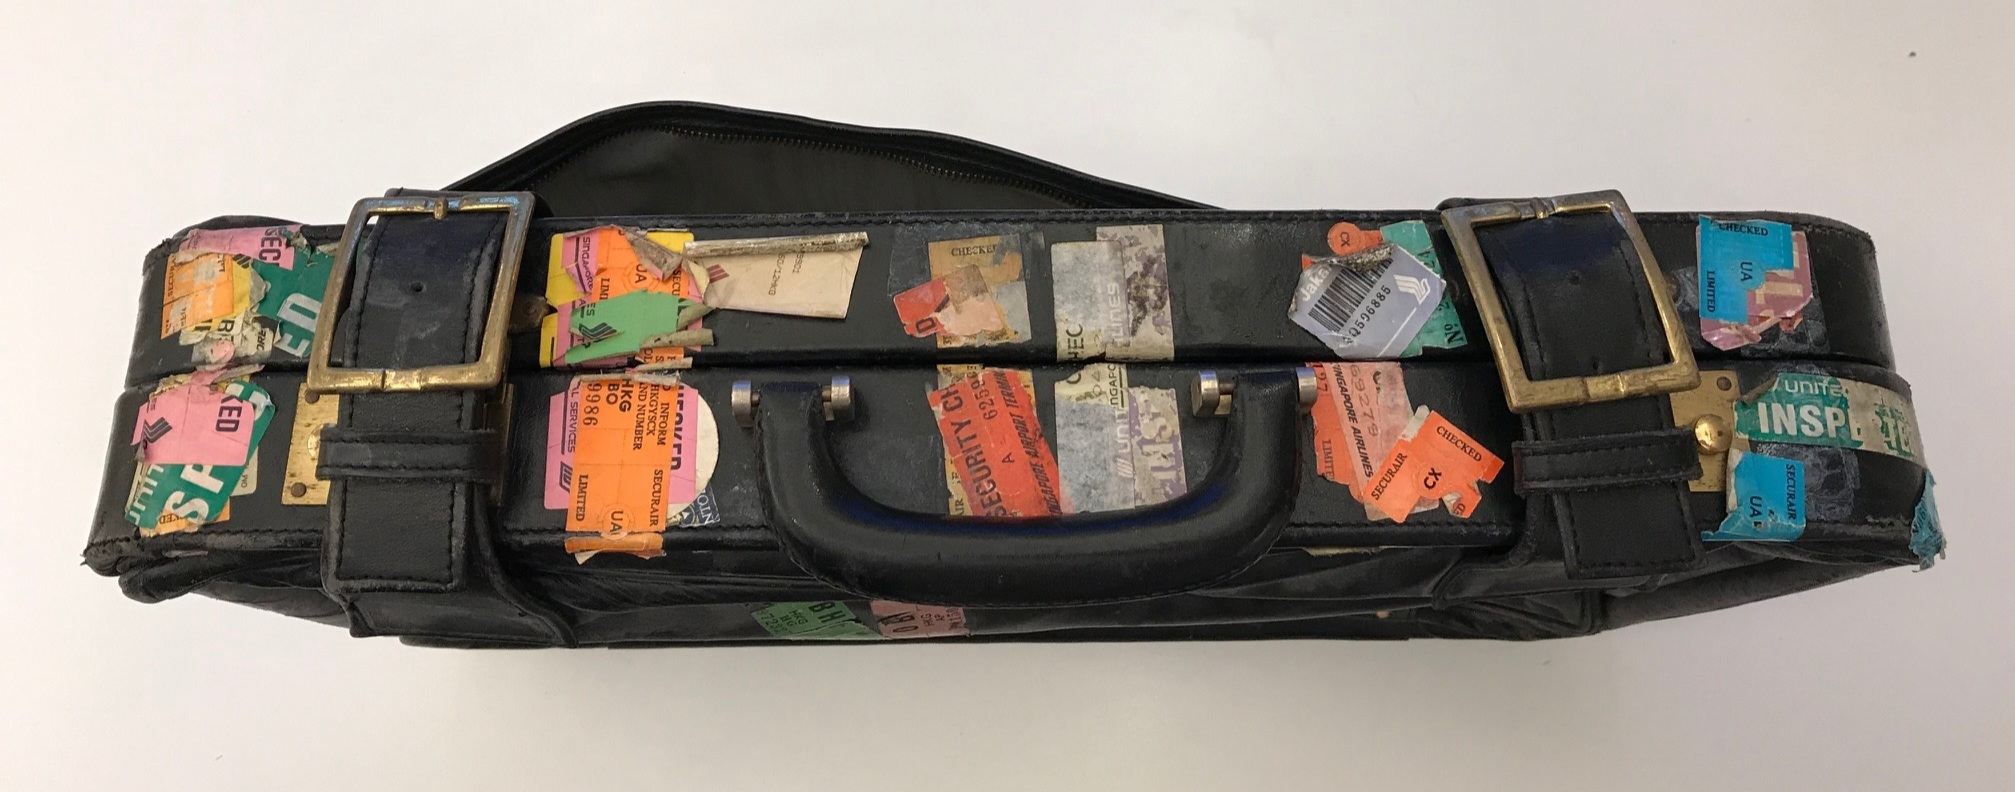 An example of Paul Rudolph's luggage. The layers of airport inspection stickers testify to his endless travel. From the collection of Ernst Wagner.